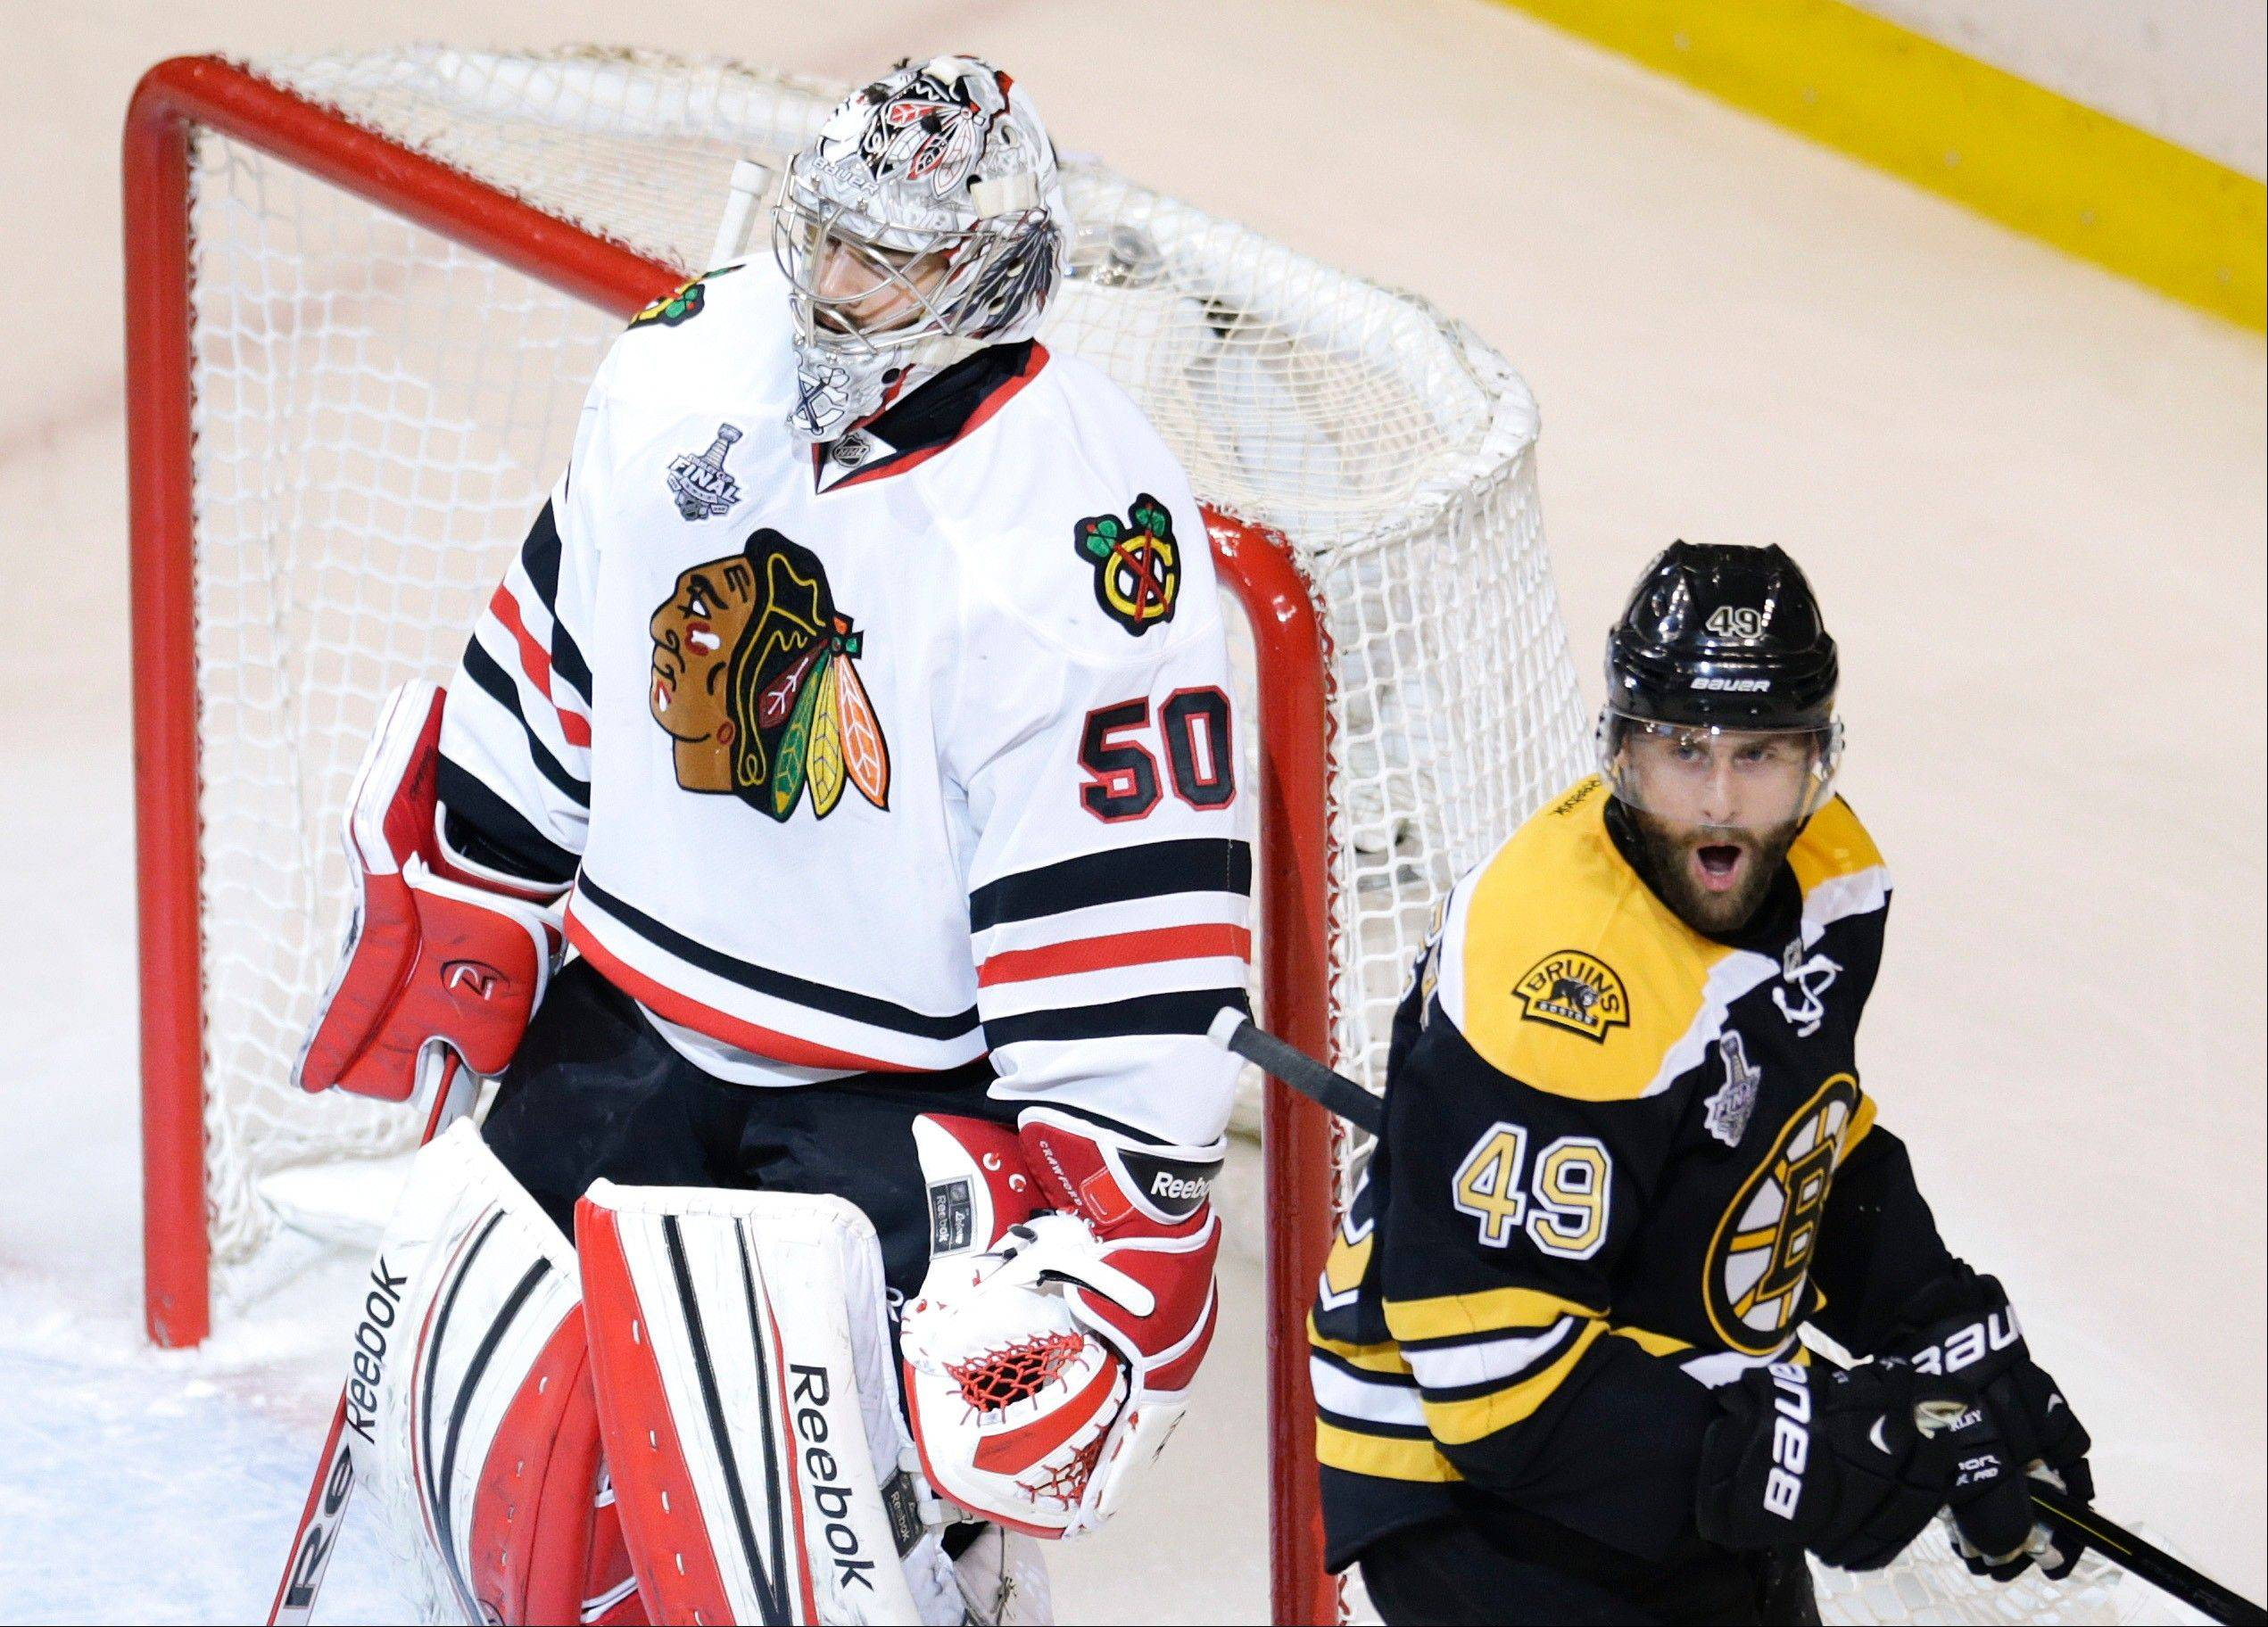 Boston Bruins center Rich Peverley (49) celebrates his goal in front of Chicago Blackhawks goalie Corey Crawford (50) during the first period in Game 4 of the NHL hockey Stanley Cup Finals.